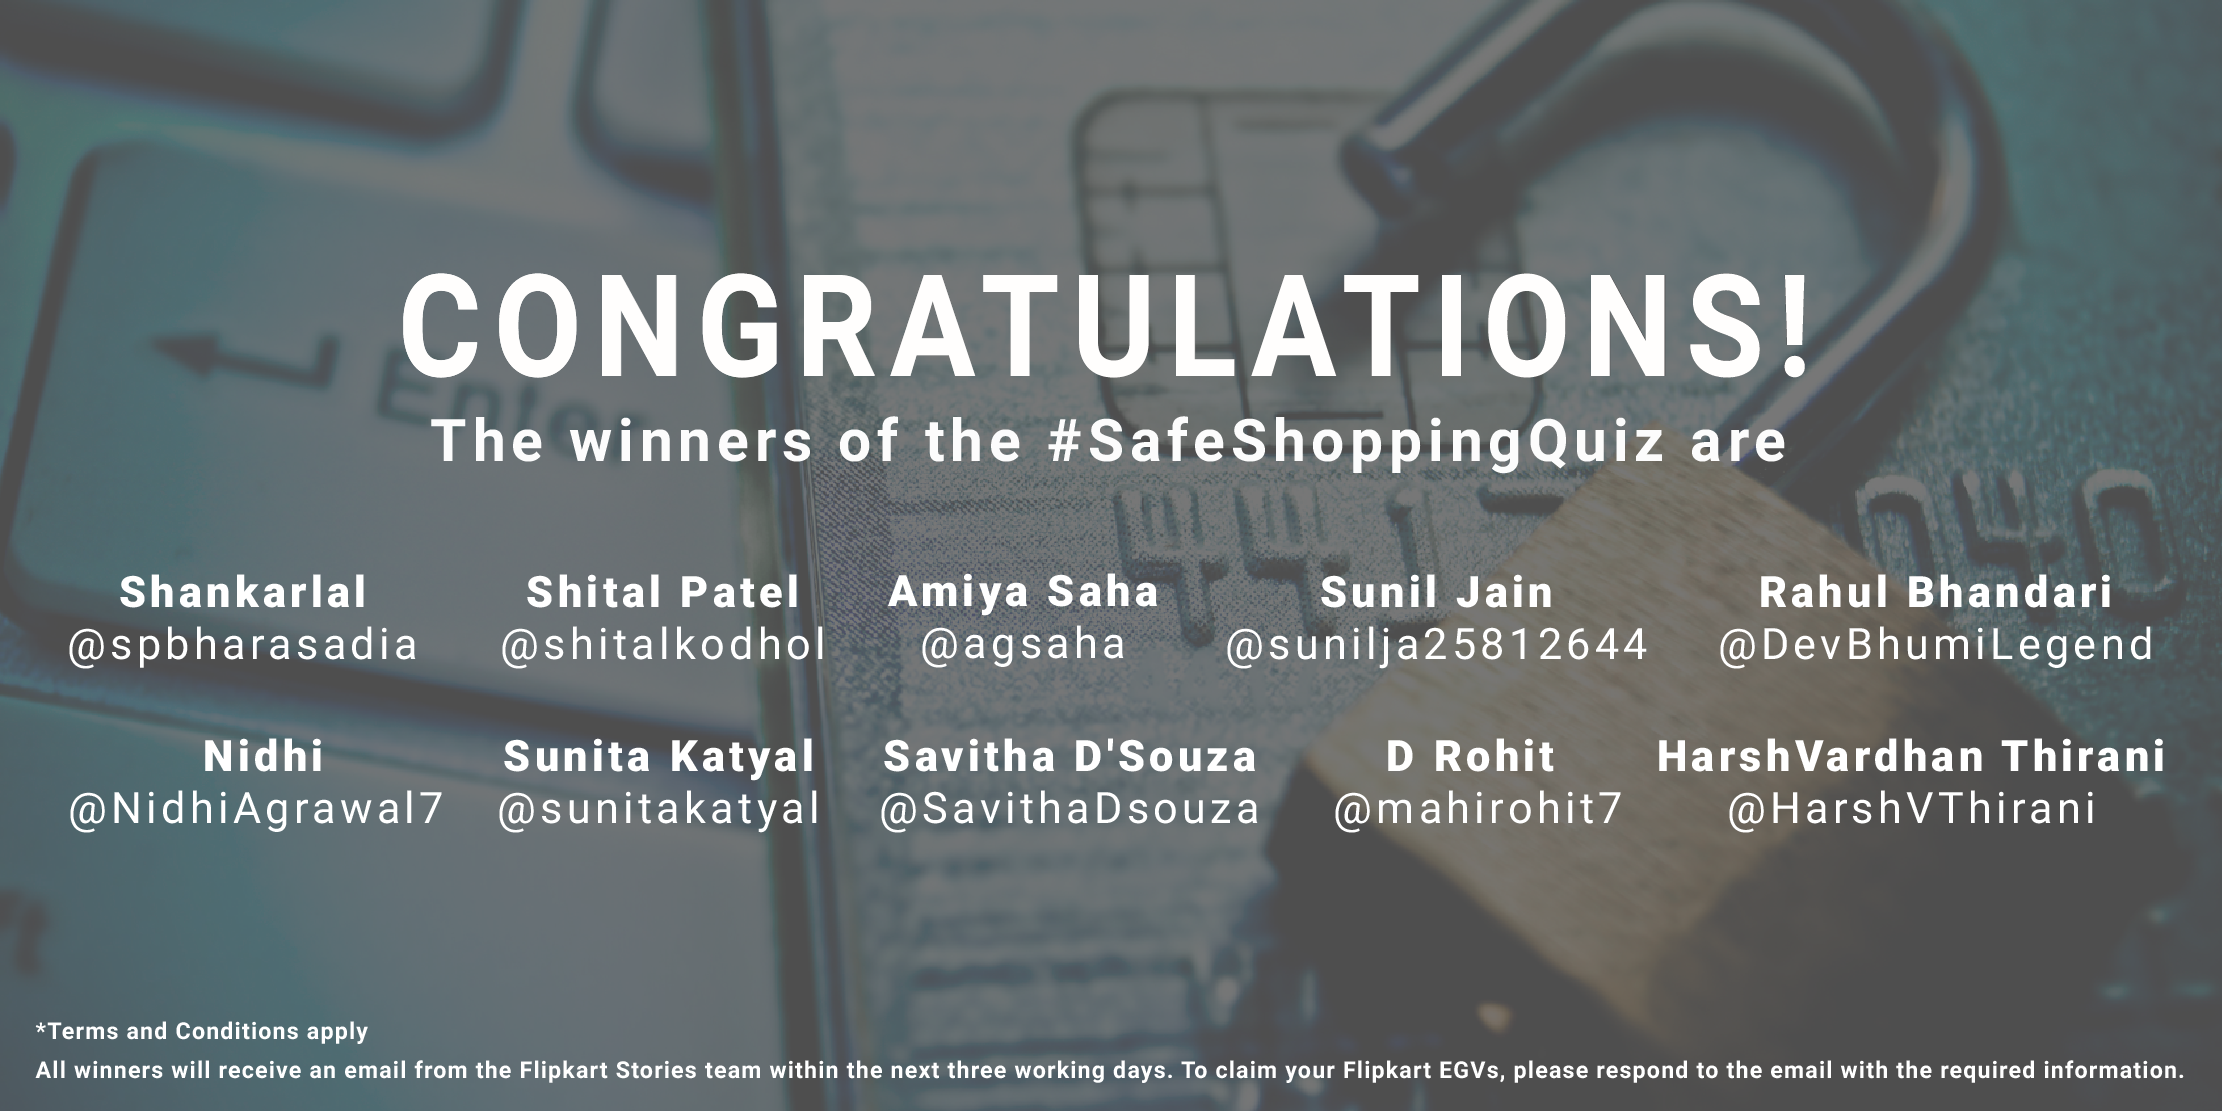 Winners #SafeShoppingQuiz